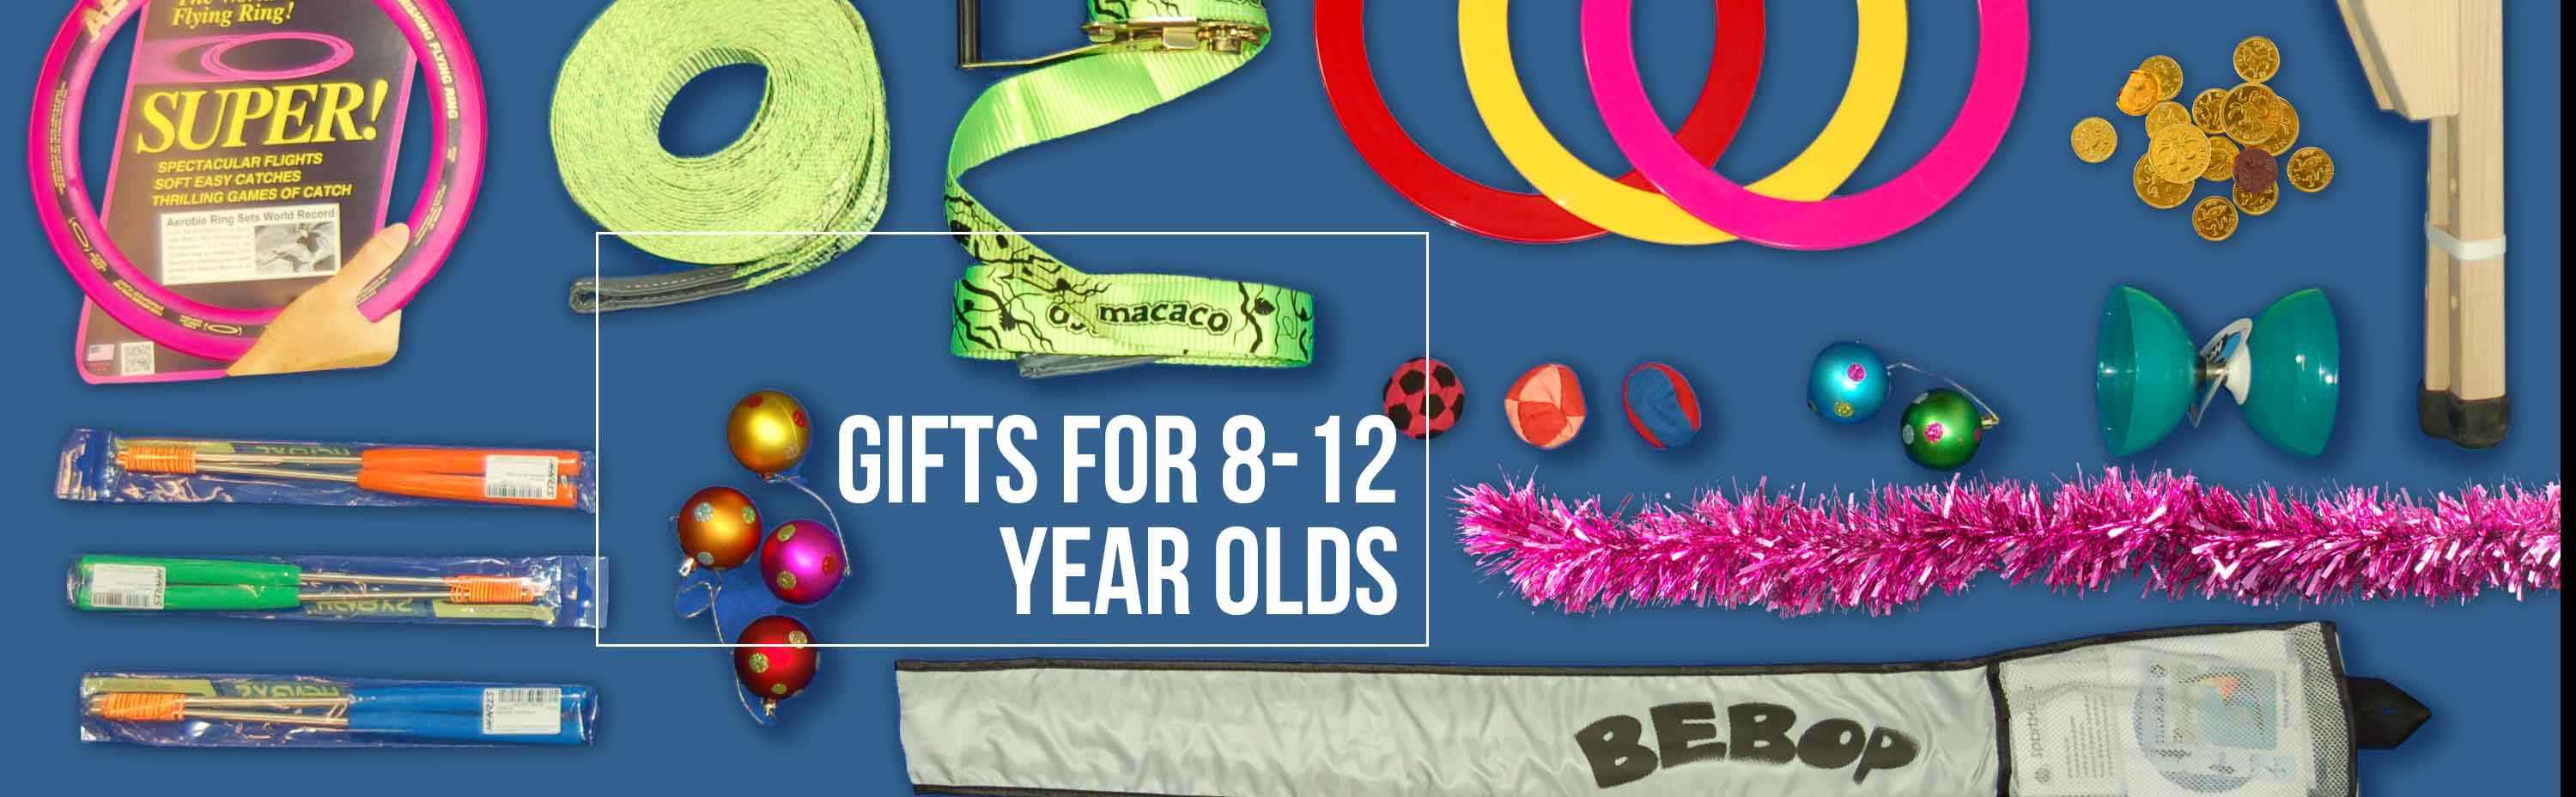 Gifts for 8 to 12 Year Olds